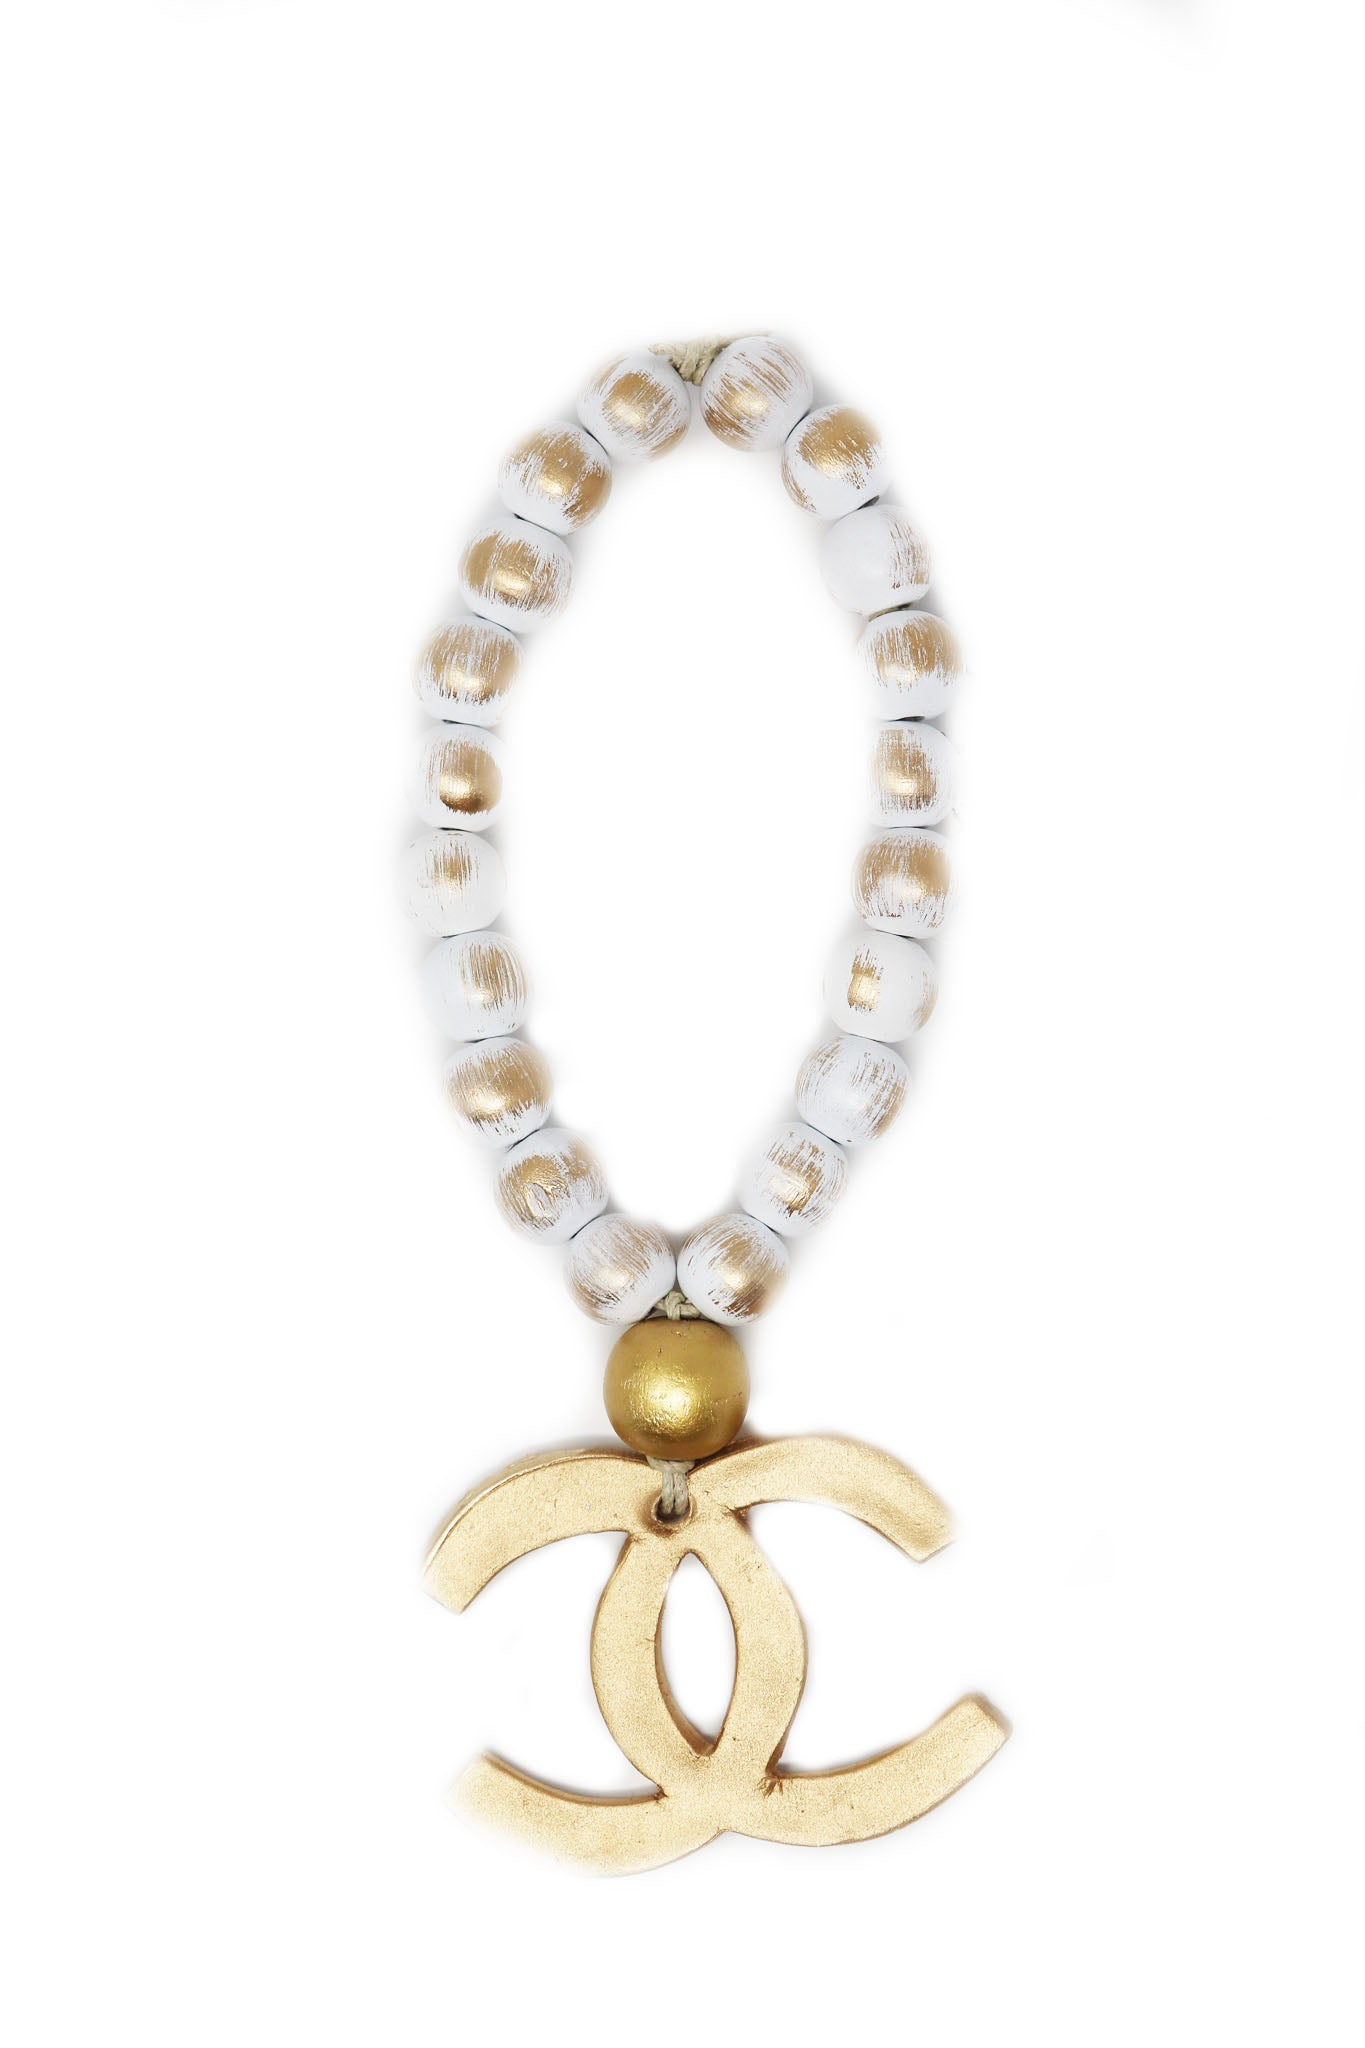 Petite Golden Chanel Blessing Beads - Gabrielle's Biloxi